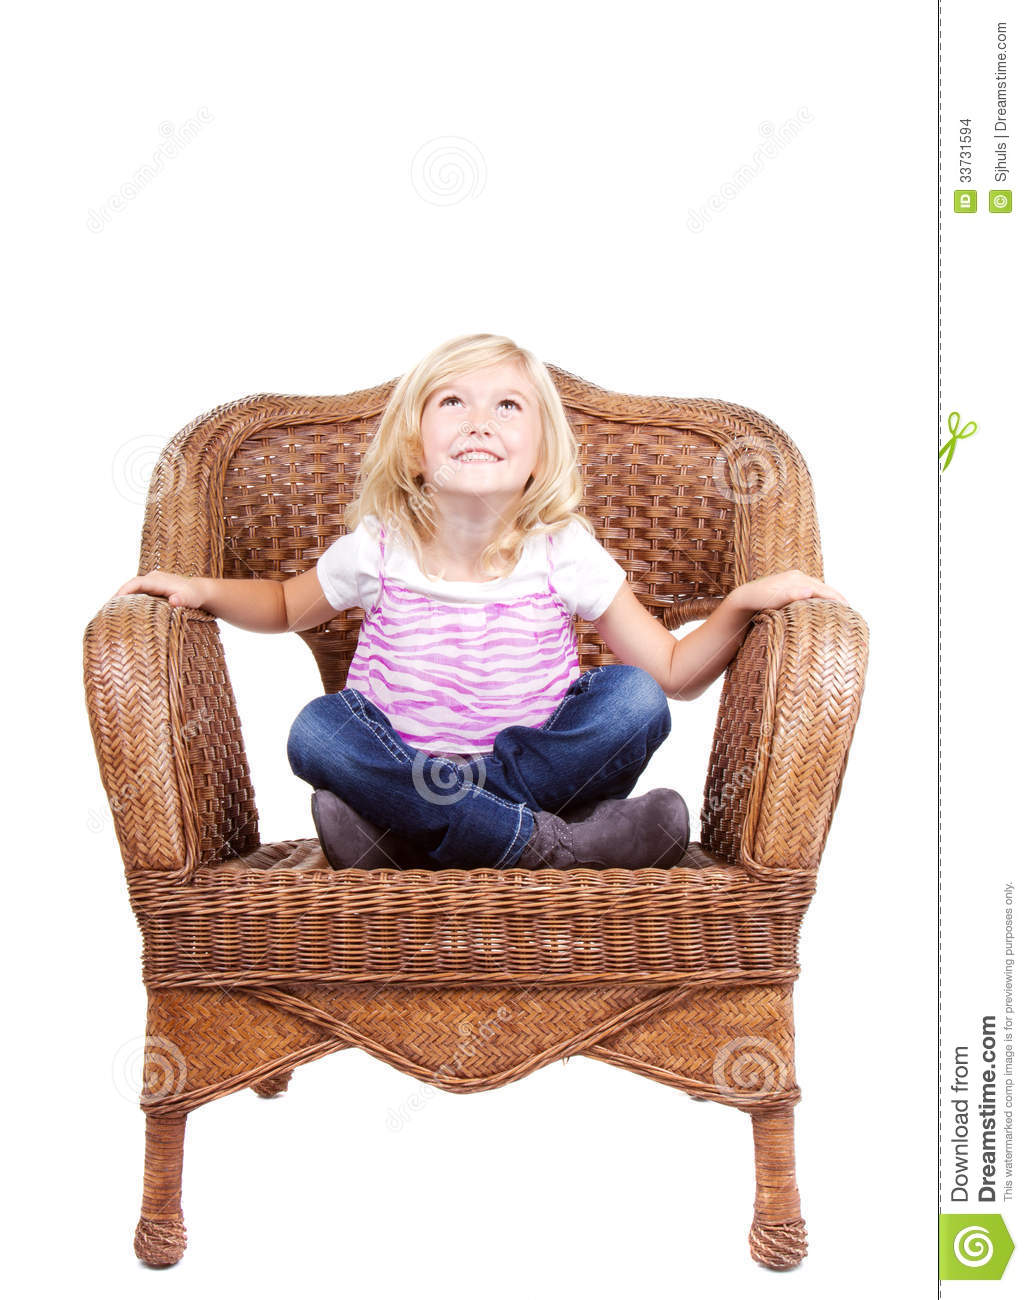 little girls chairs office chair qoo10 girl sitting on a stock images image 33731594